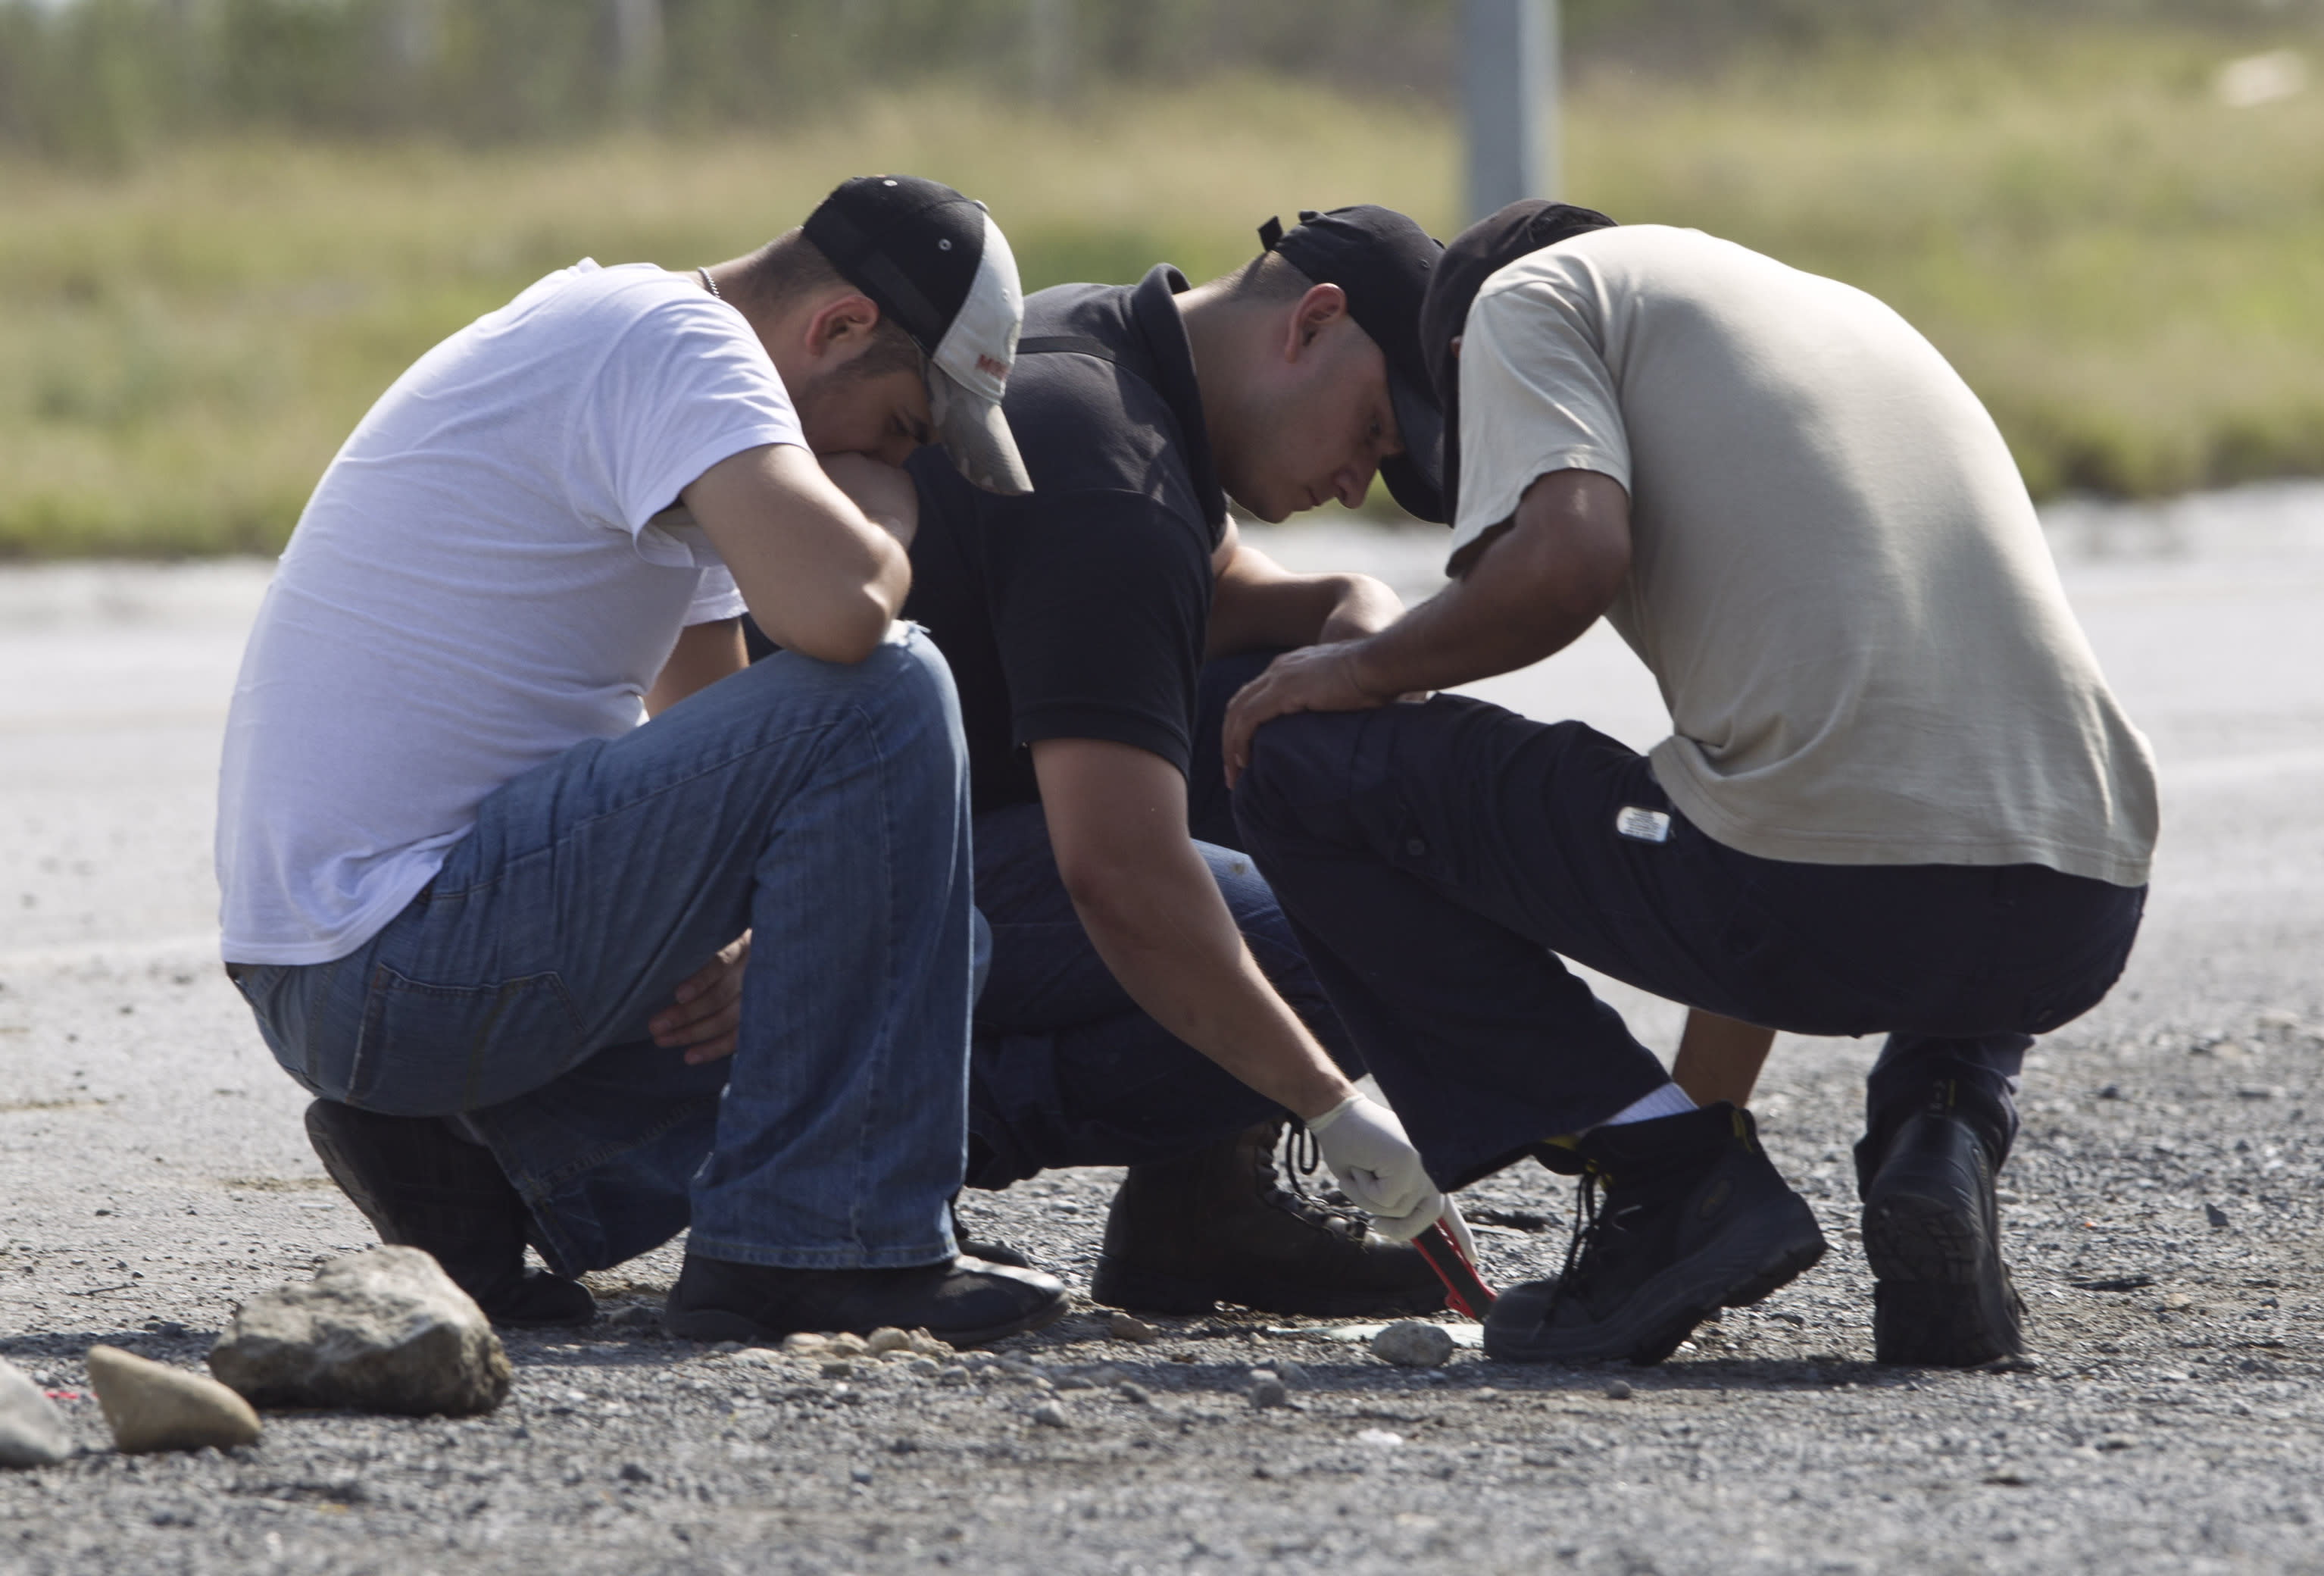 FILE - In this May 13, 2012 file photo, forensic experts examine the area where dozens of bodies, some of them mutilated, were found on a highway connecting the northern Mexican metropolis of Monterrey, Mexico, to the U.S. border. Two months after police found 49 dismembered bodies strewn on a Mexican highway leading to the Texas border, authorities have not identified a single victim. (AP Photo/Christian Palma, File)